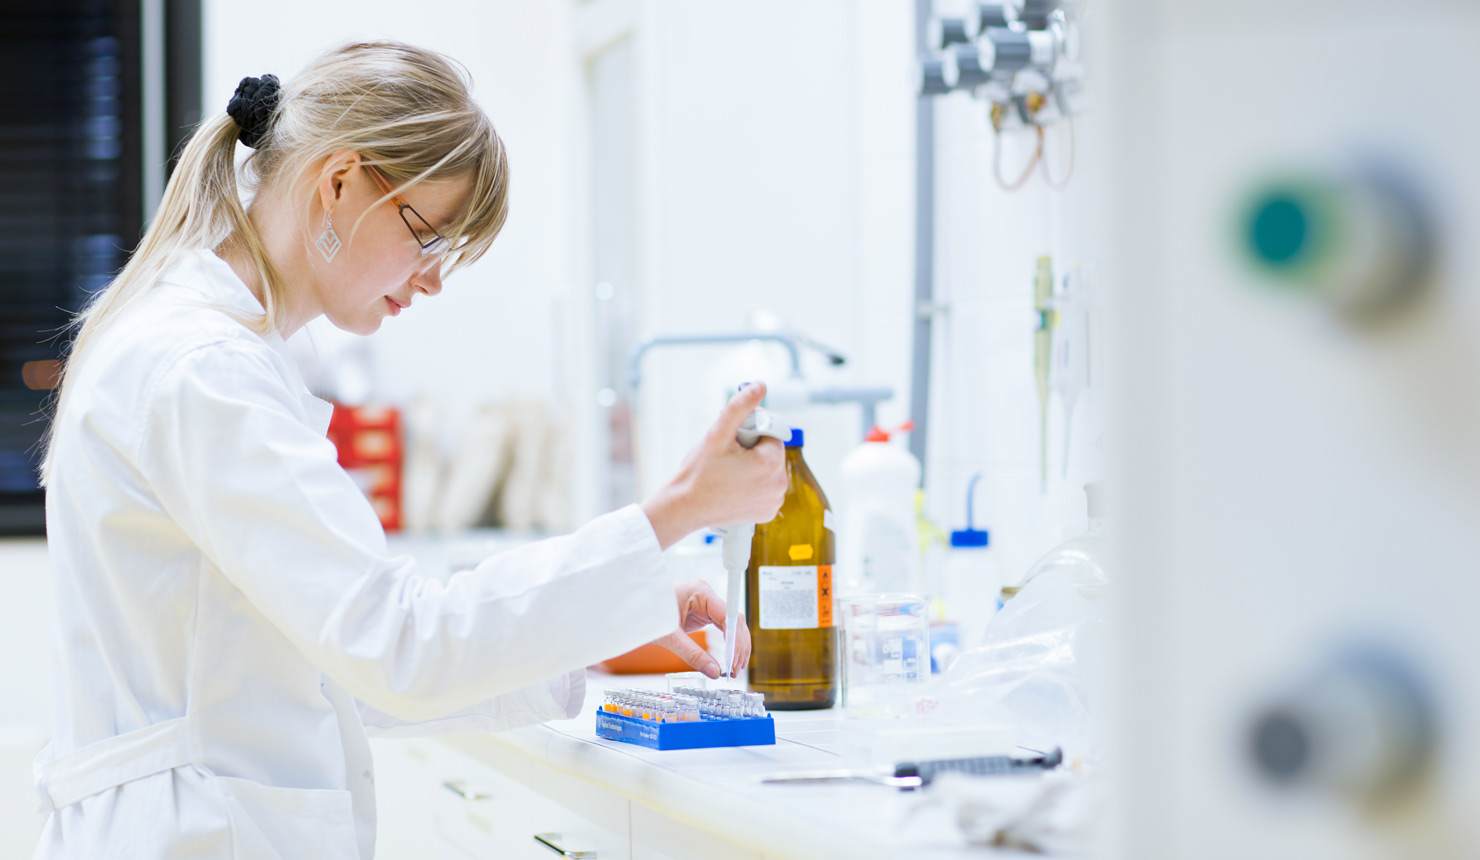 what does phd stand for in chemistry